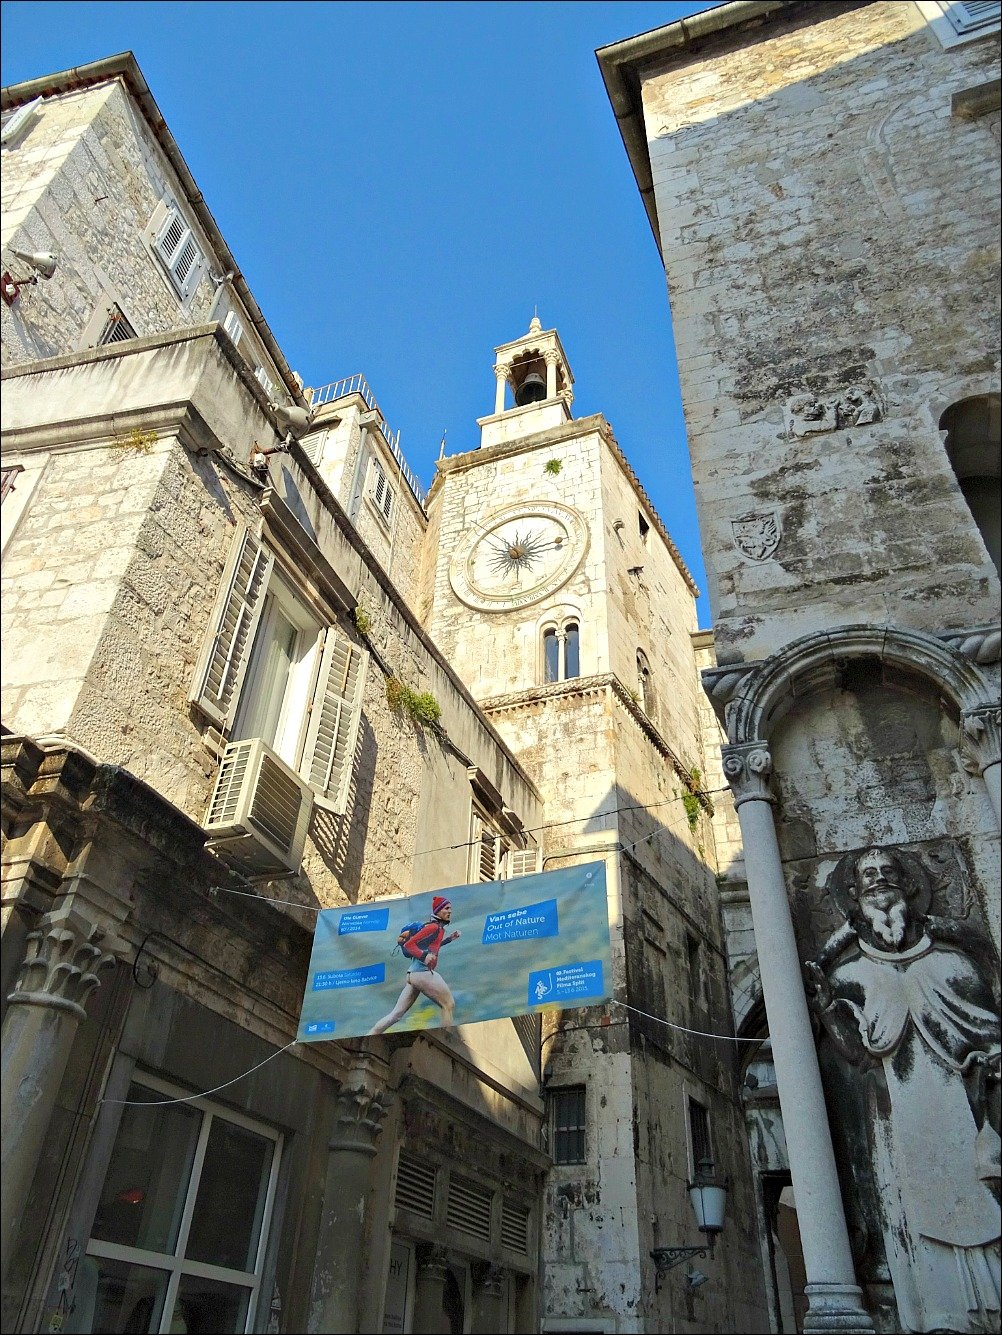 Diocletians Palace Clock Tower and Advertisement